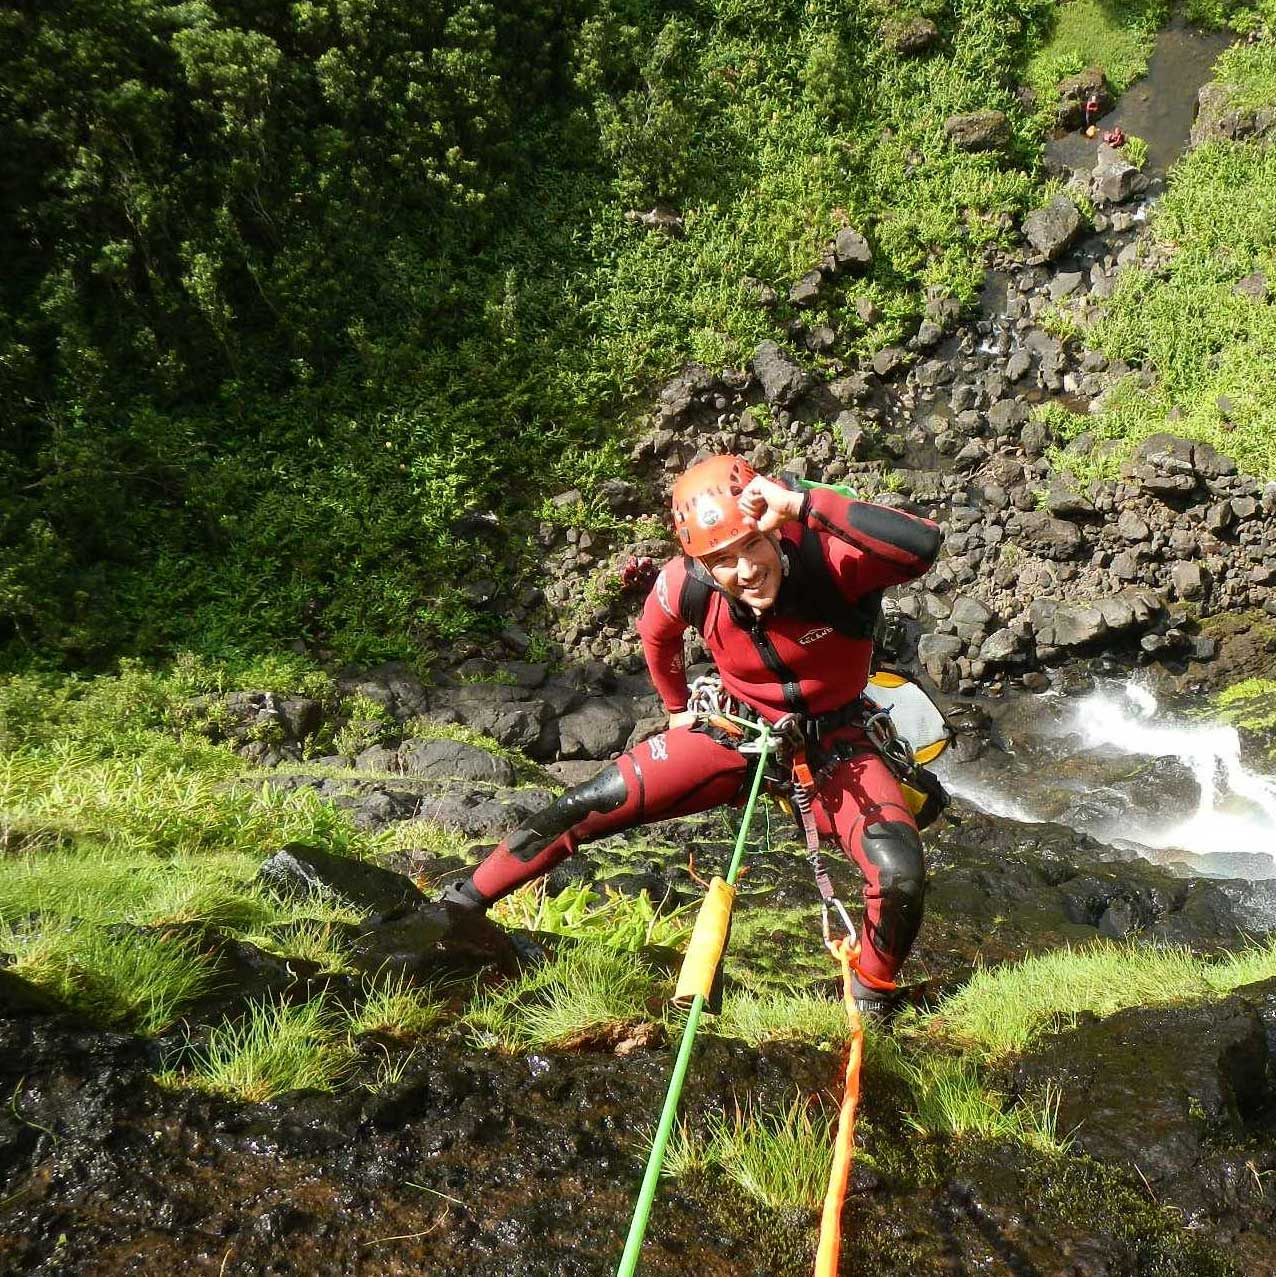 Bruno Silveira from Tobogã Azores, rappelling down. Canyoning is a leisure activity